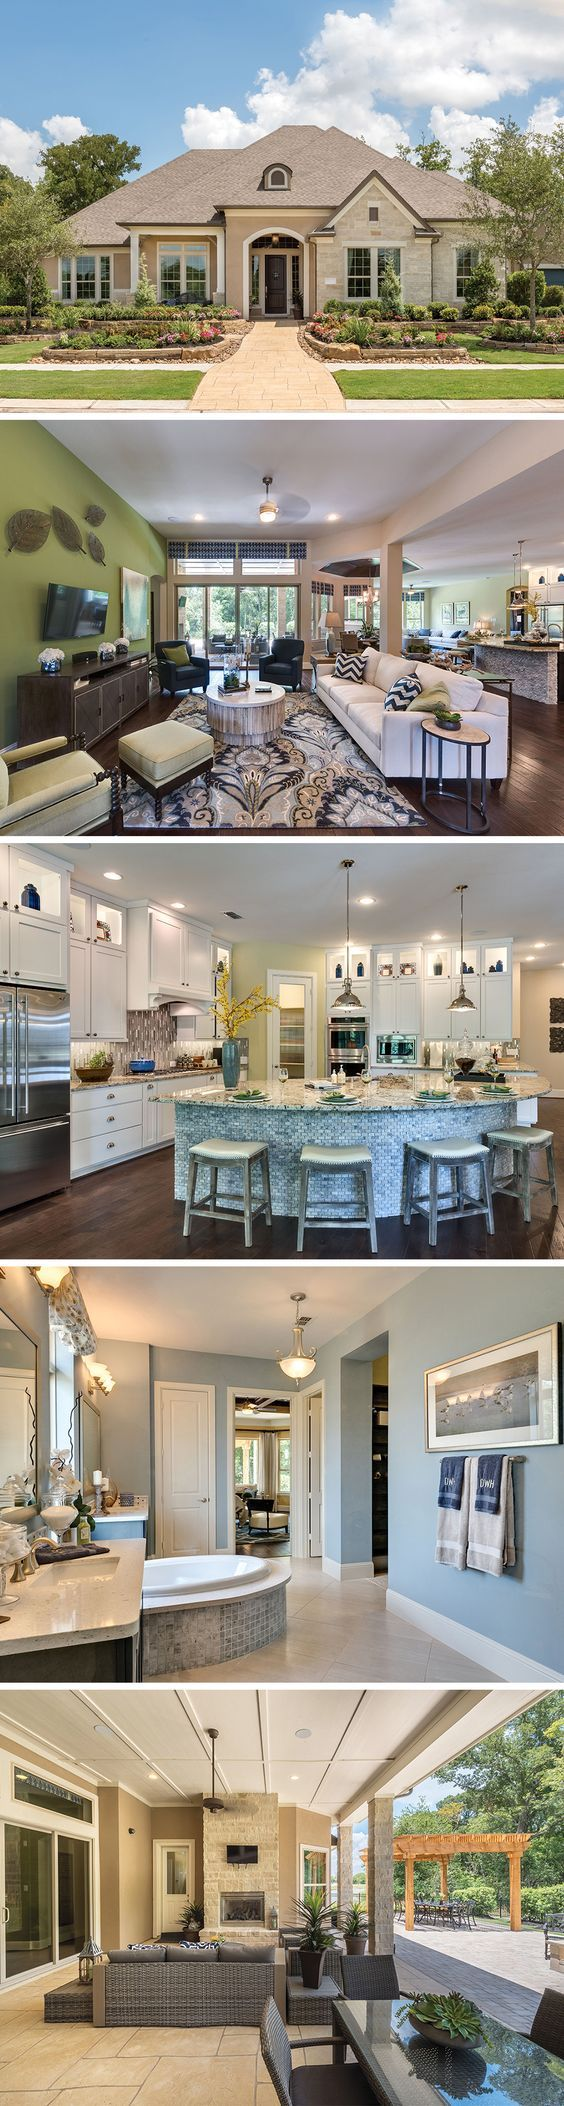 Find a new home in Fulshear, TX! You'll love the intricate details of The Anaheim - from the tiled wall in the study to the ceiling treatment in the dining area.: